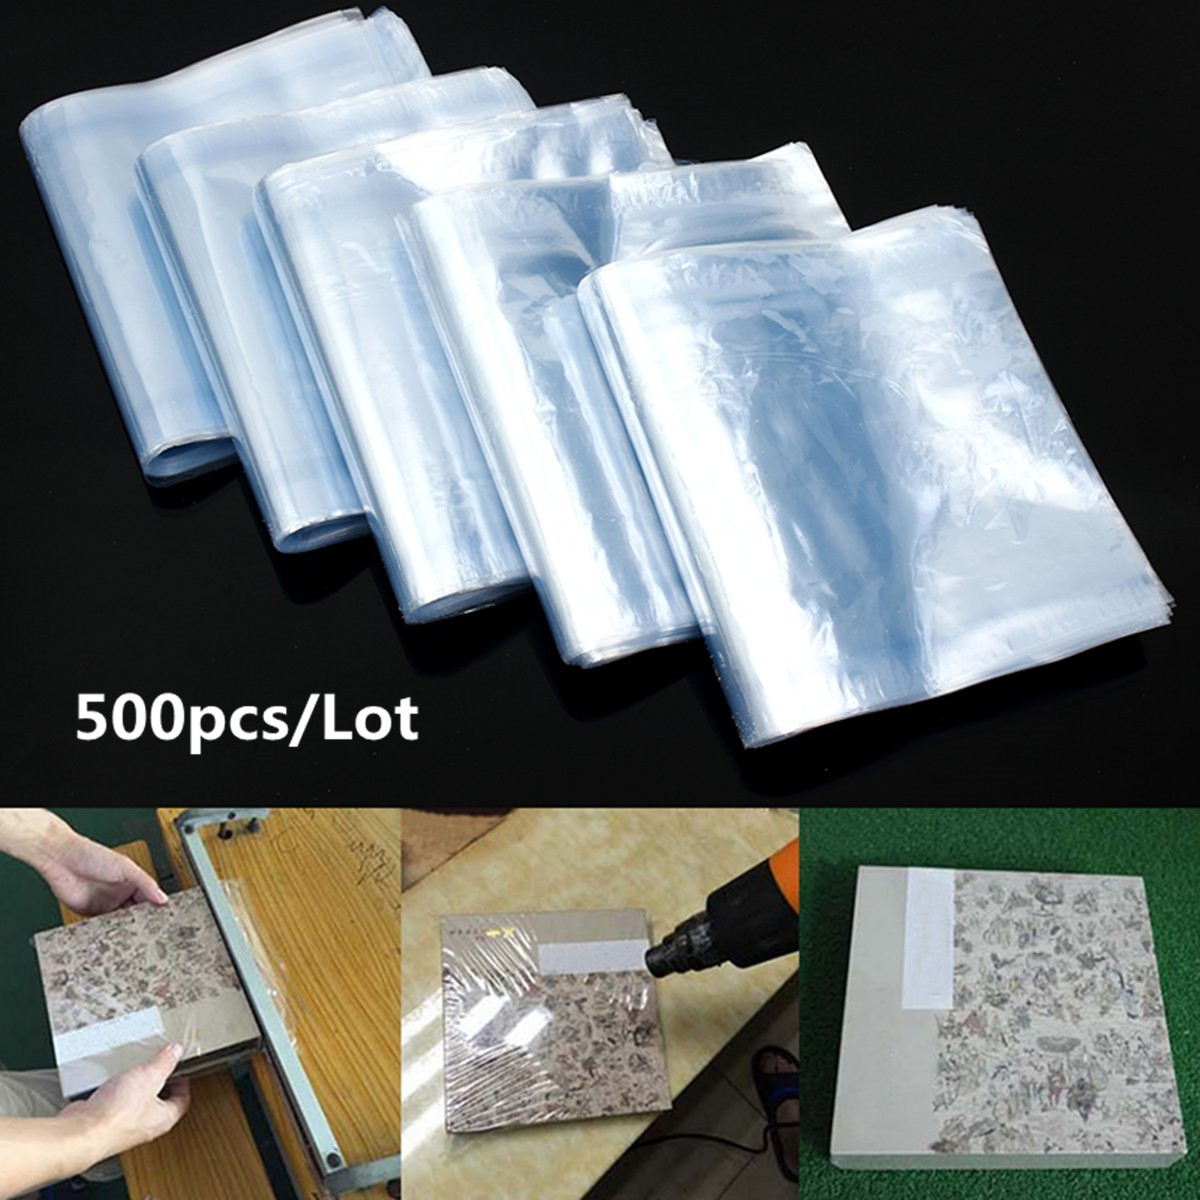 500Pcs PVC Heat Shrink Wrap Bags Film Clear Flat Poly Storage Bag Soap Candles Packaging 15×27cm